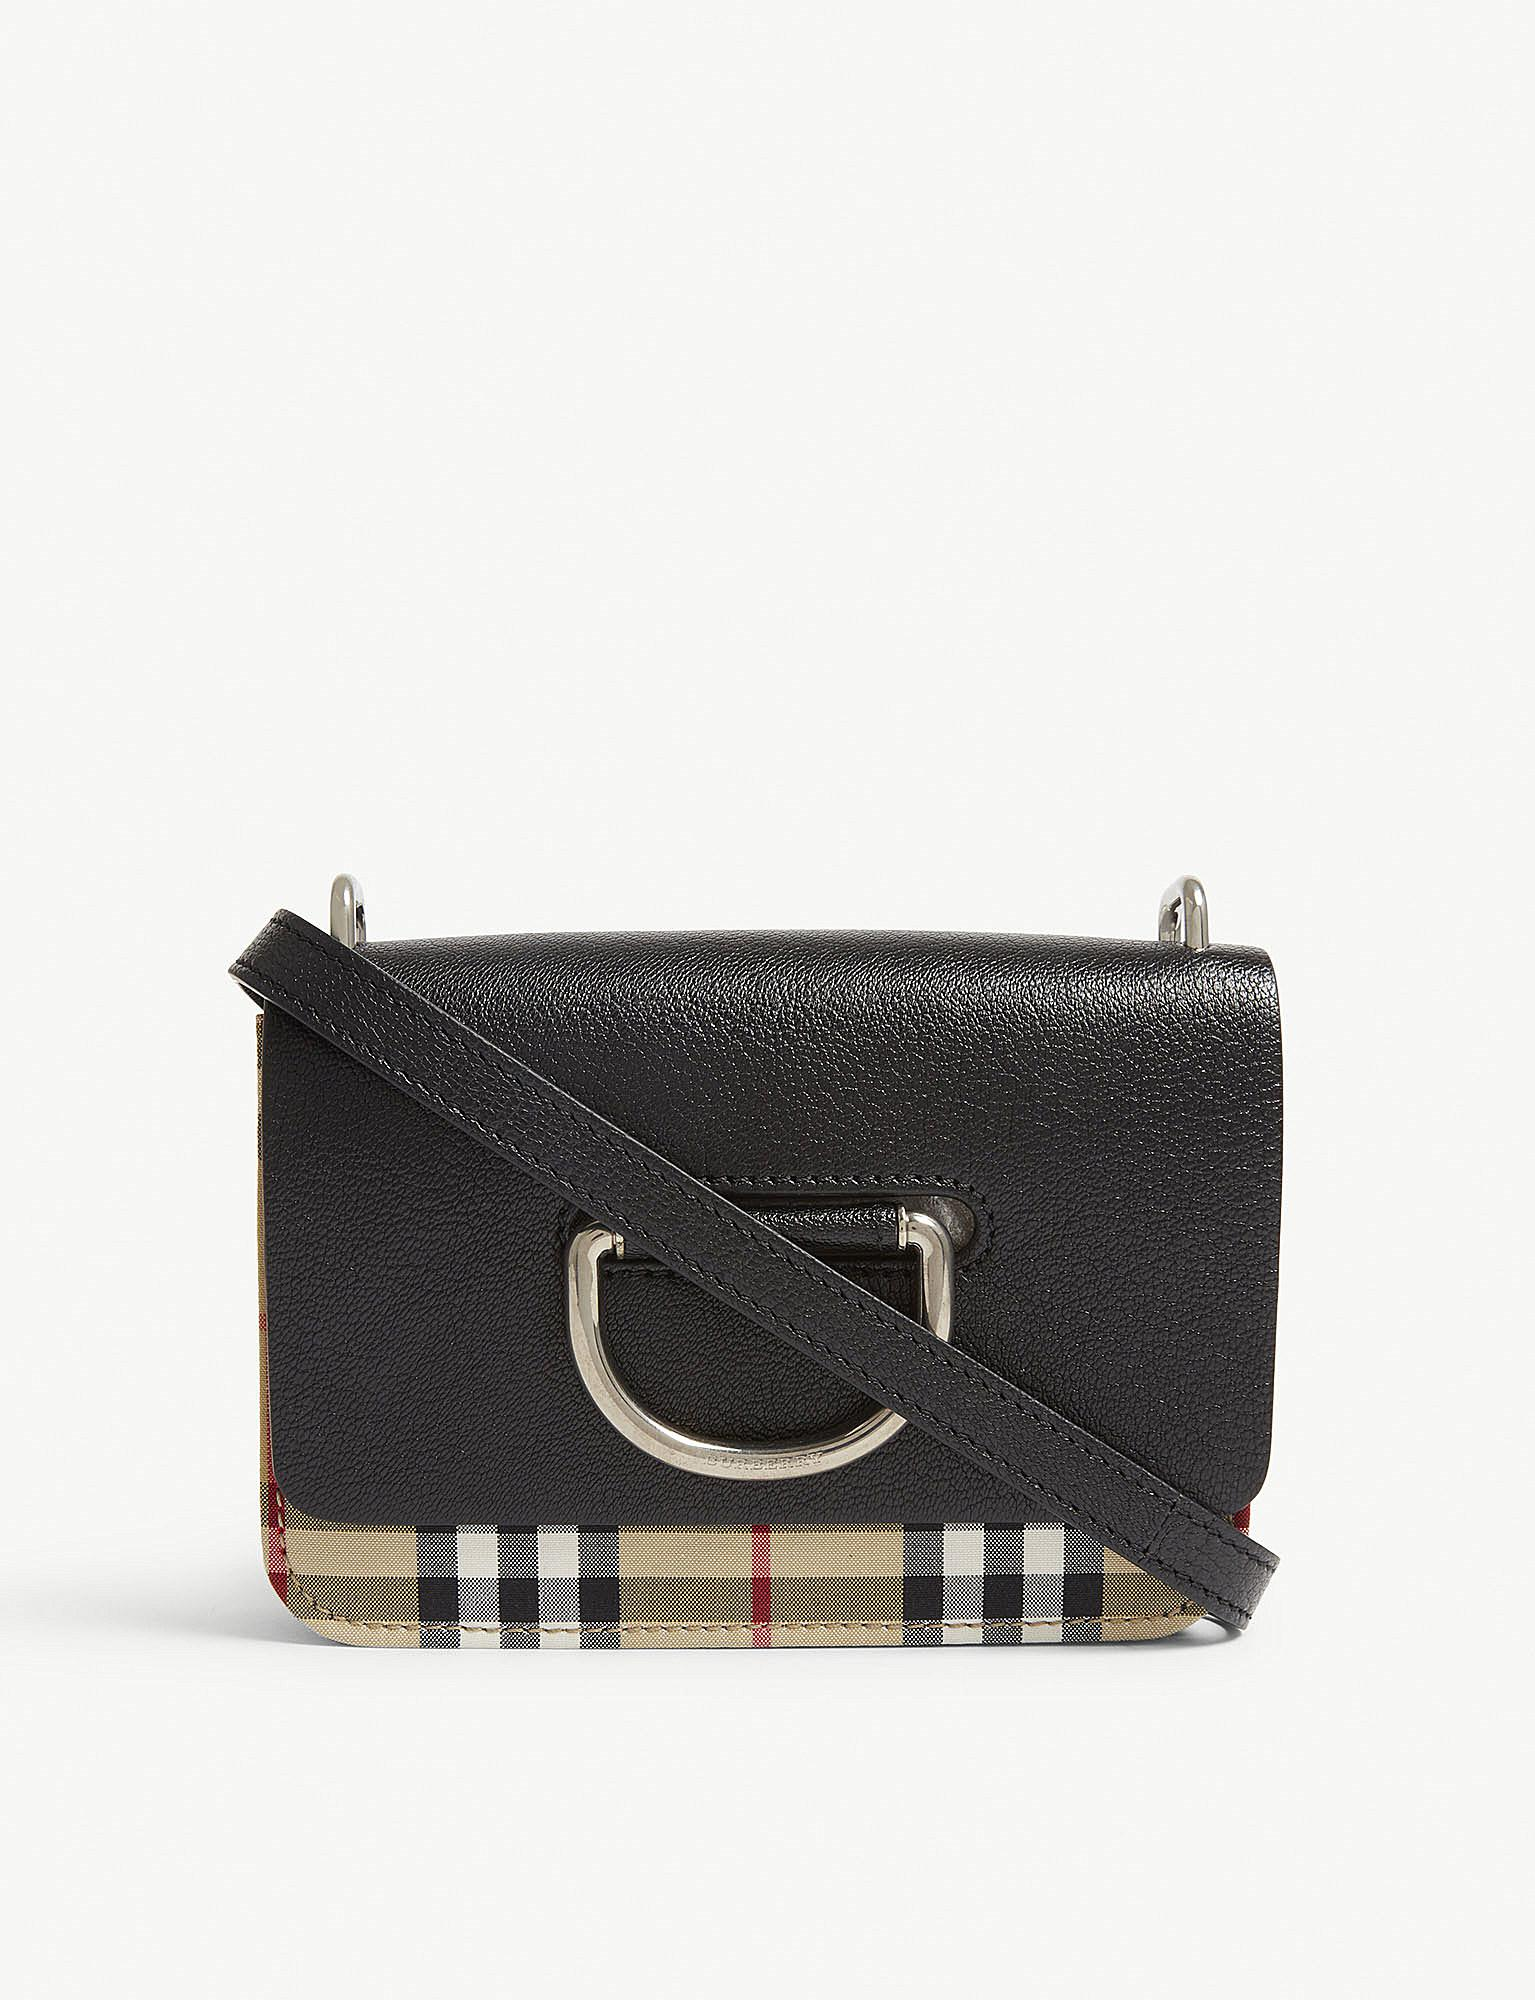 Lyst - Burberry Black Check The Mini Vintage Leather Cross Body Bag ... 458a0c9f96454